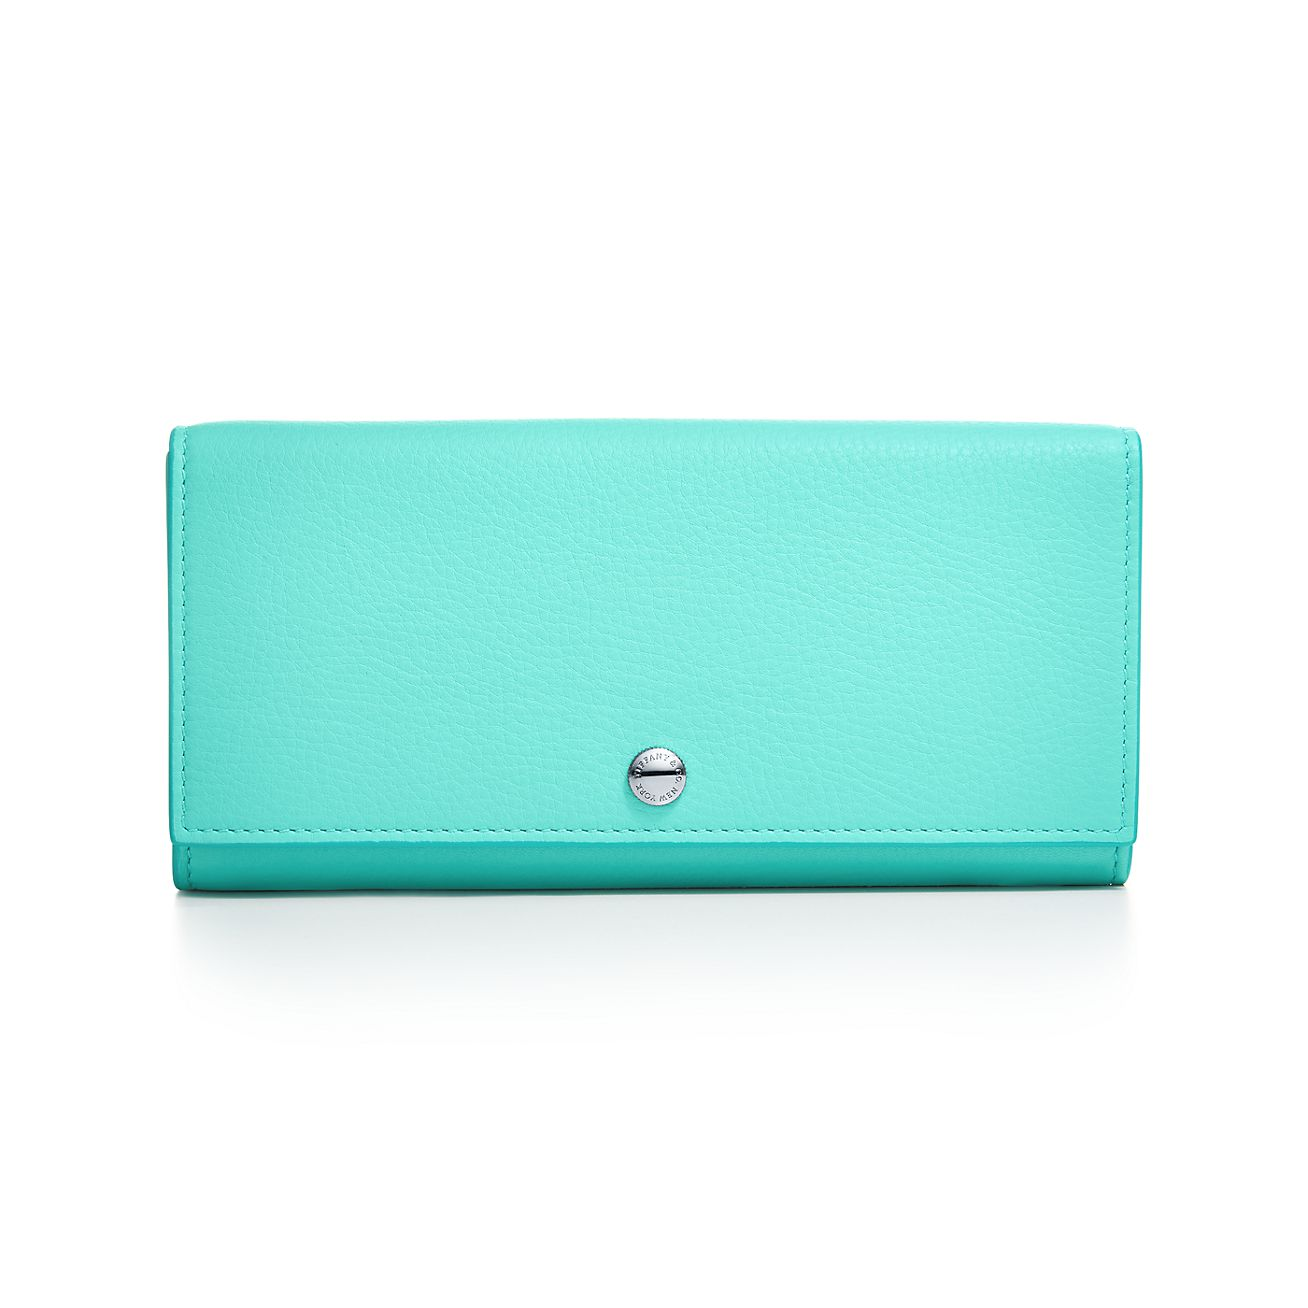 Zip wallet in Tiffany Blue grain calfskin leather Tiffany & Co.